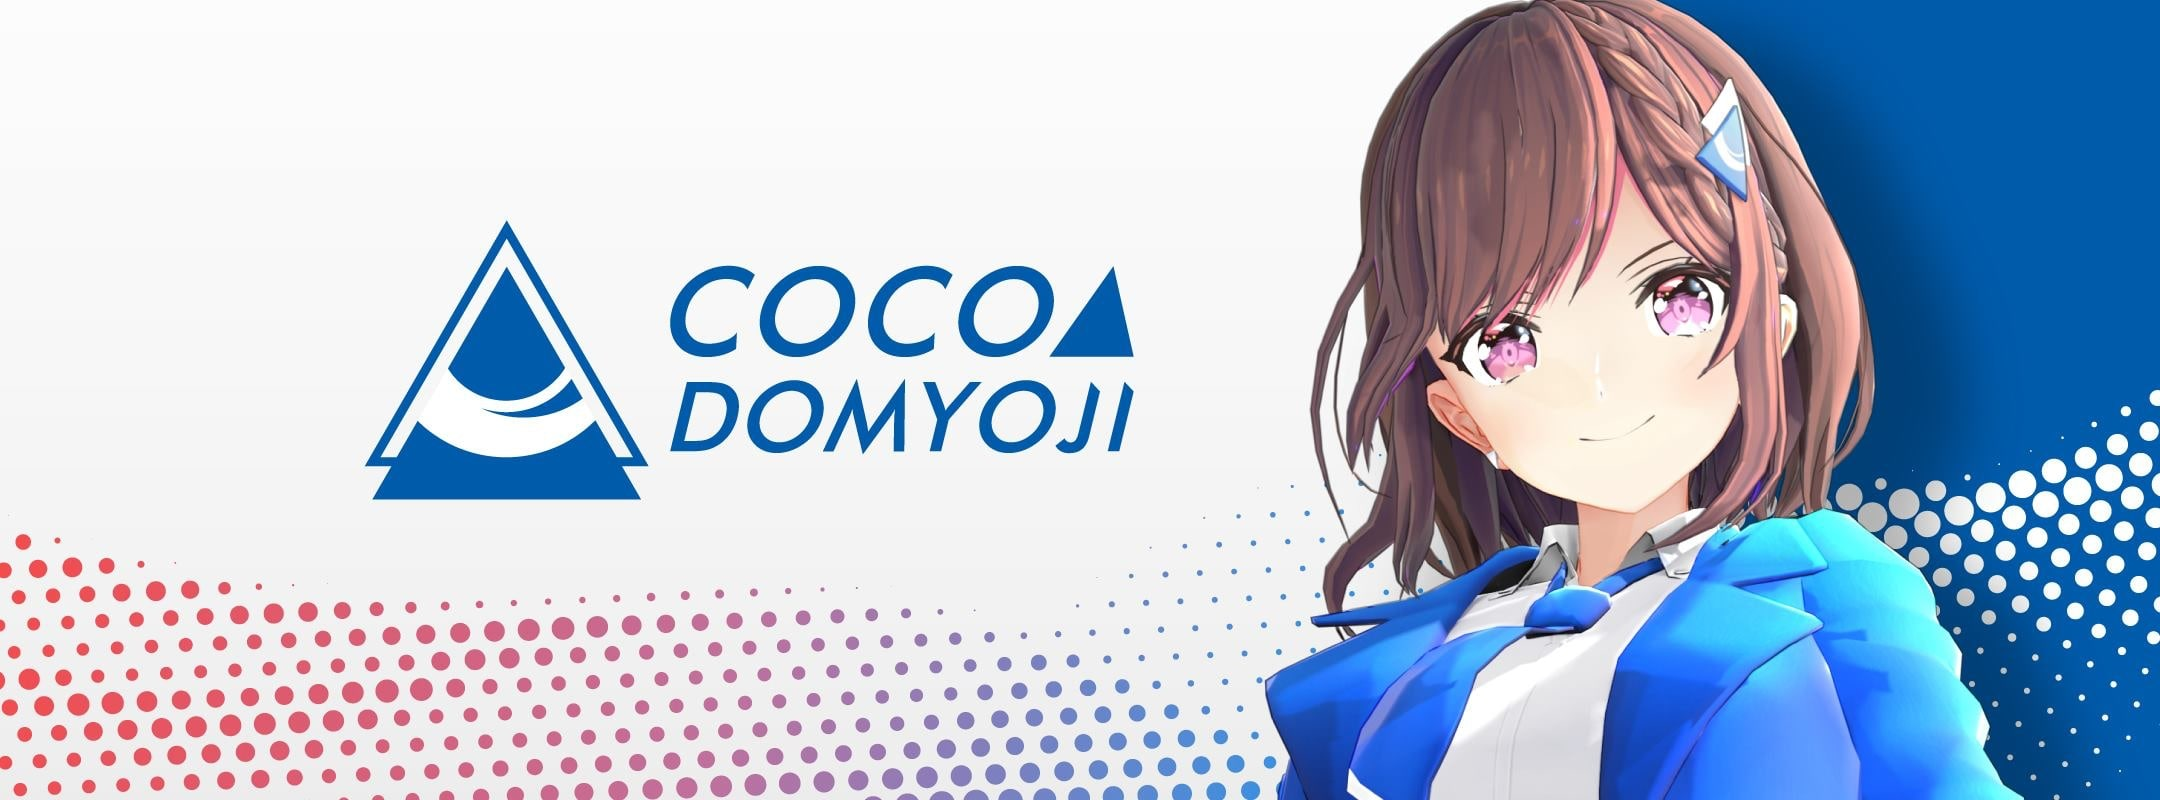 COCOA CHANNEL